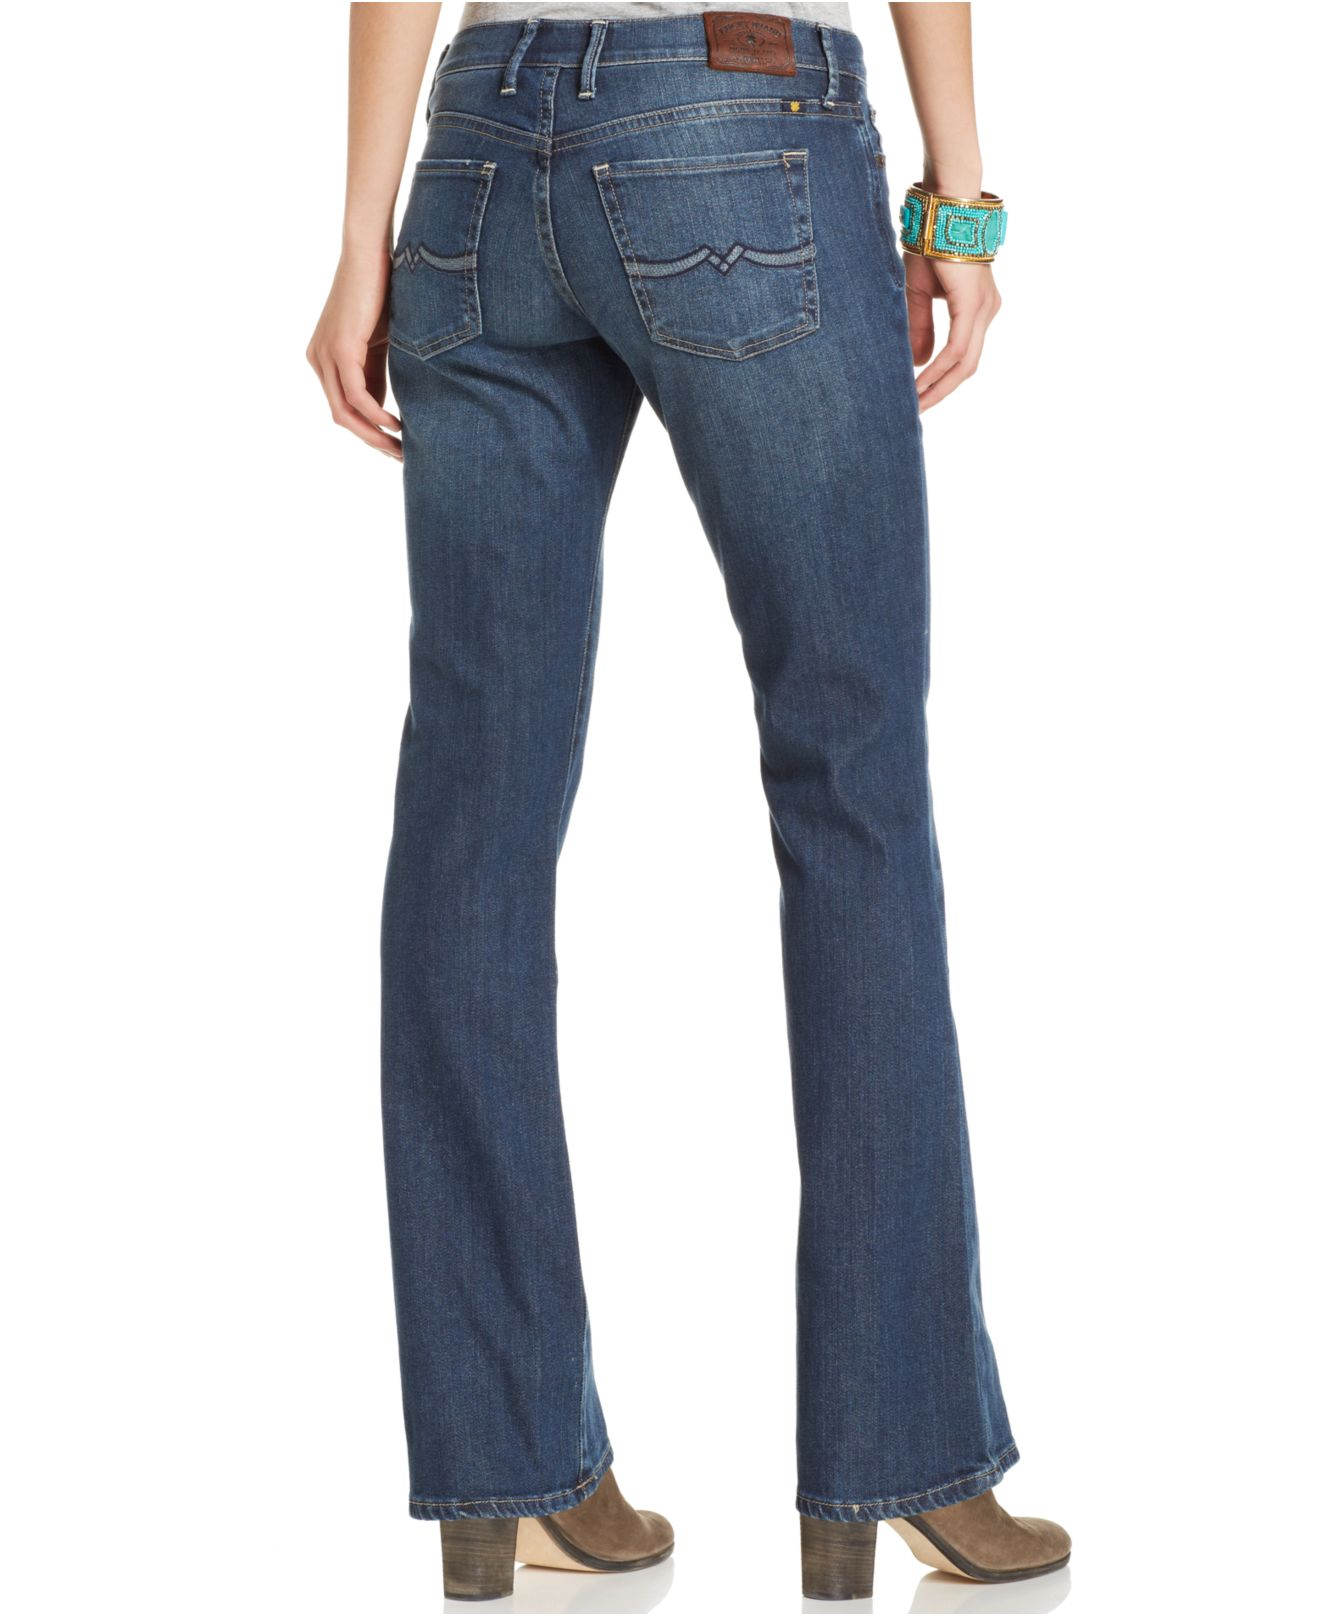 Free shipping BOTH ways on womens lucky blue jeans, from our vast selection of styles. Fast delivery, and 24/7/ real-person service with a smile. Click or call